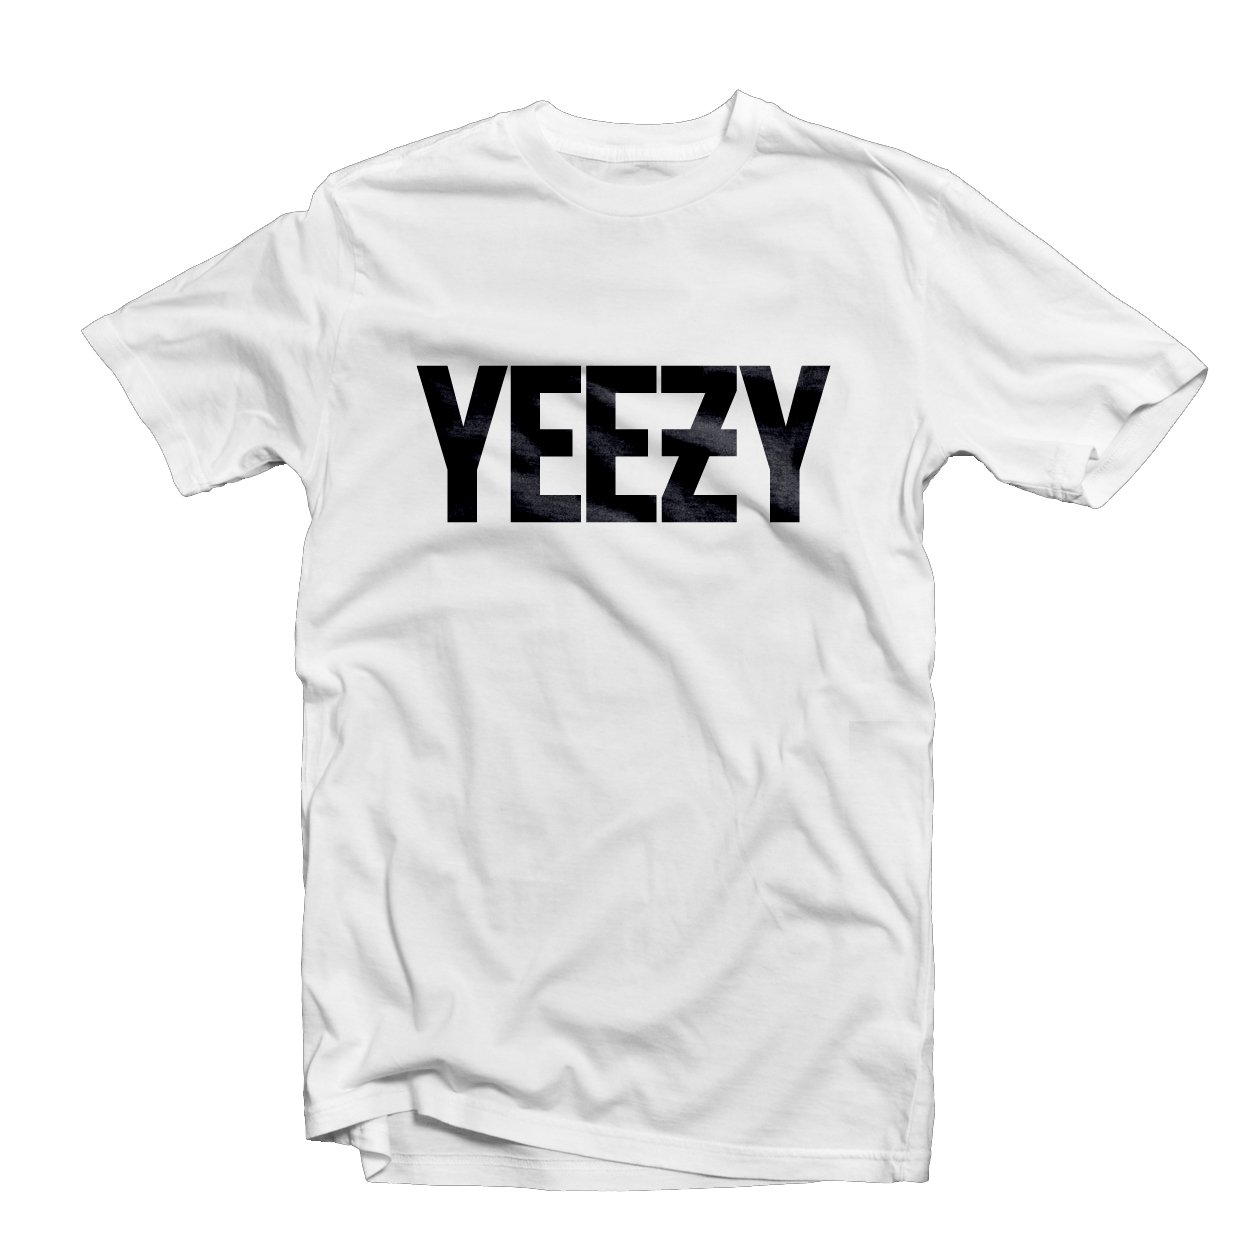 5d08631a46a86 YEEZY T SHIRT 1550 - I Feel Like Pablo Kanye West Yeezy YZY Yeezus Dope  Swag Hype Hipster Trill Hip Hop Wasted Youth (Medium